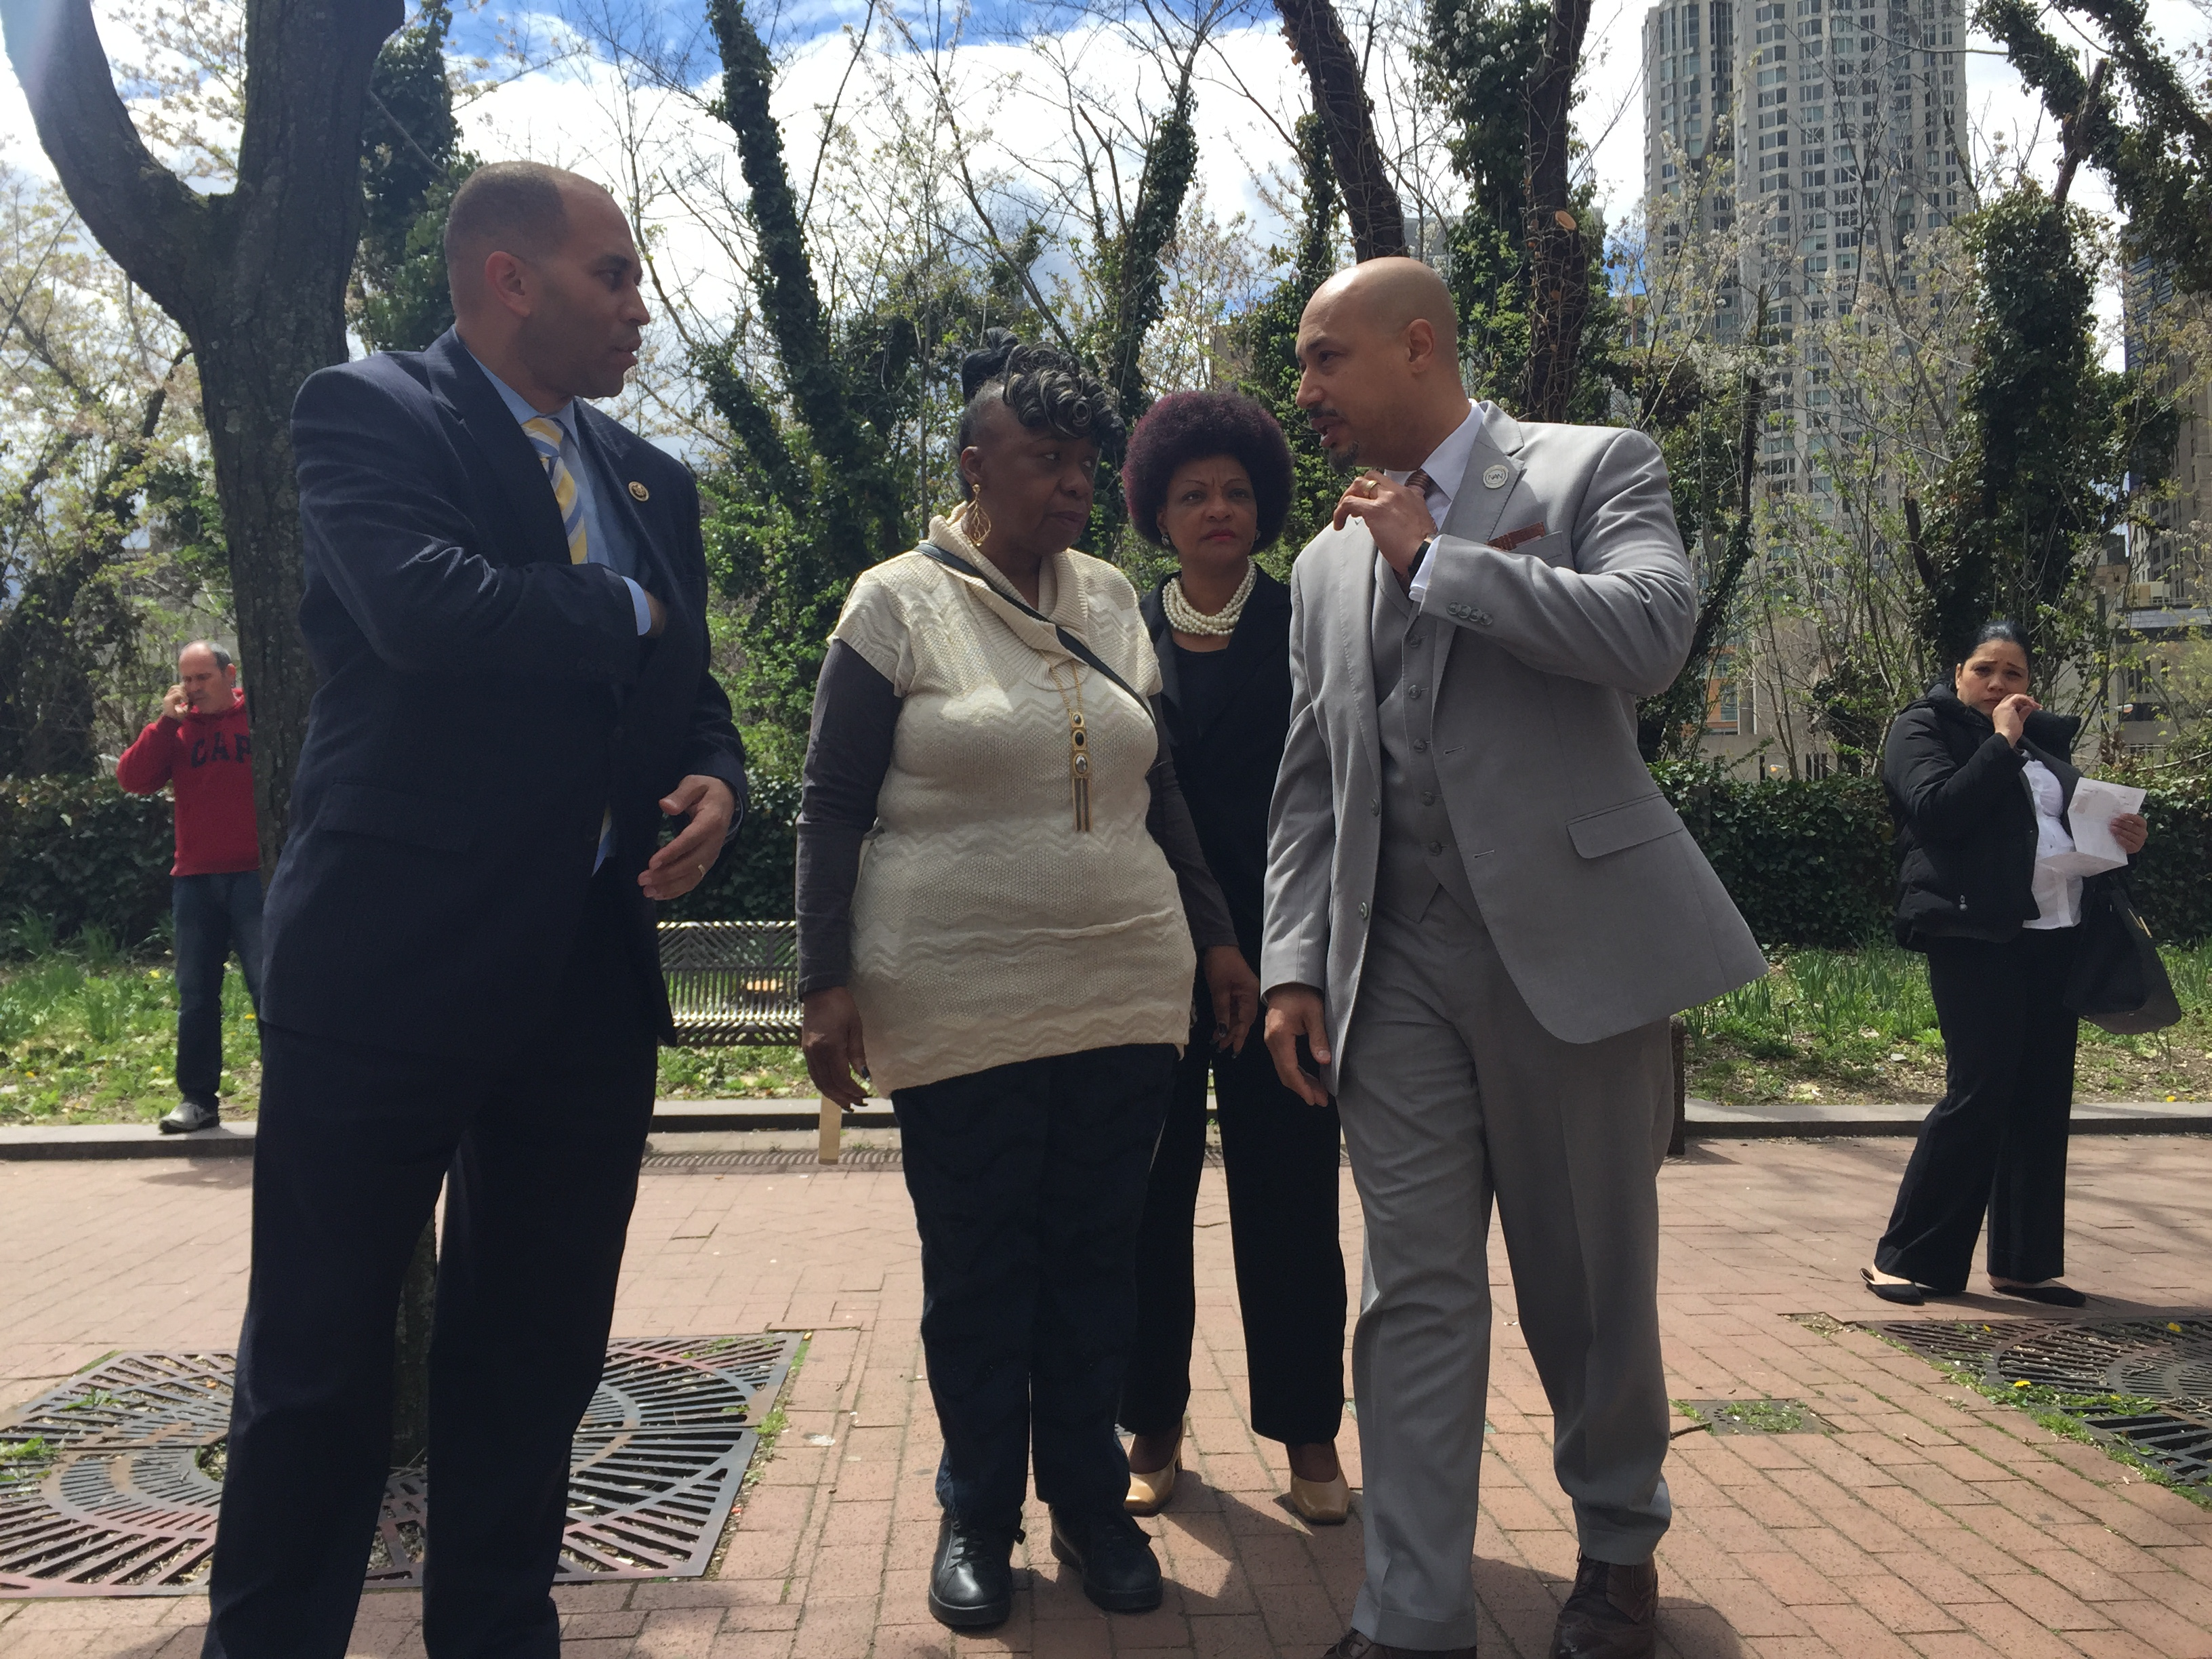 Congressman Hakeem Jeffries stands with Gwen Carr, the mother of Eric Garner, and Cynthia Davis and Kirsten John Foy of the National Action Network before today's announcement. (Photo: Jillian Jorgensen/New York Observer)